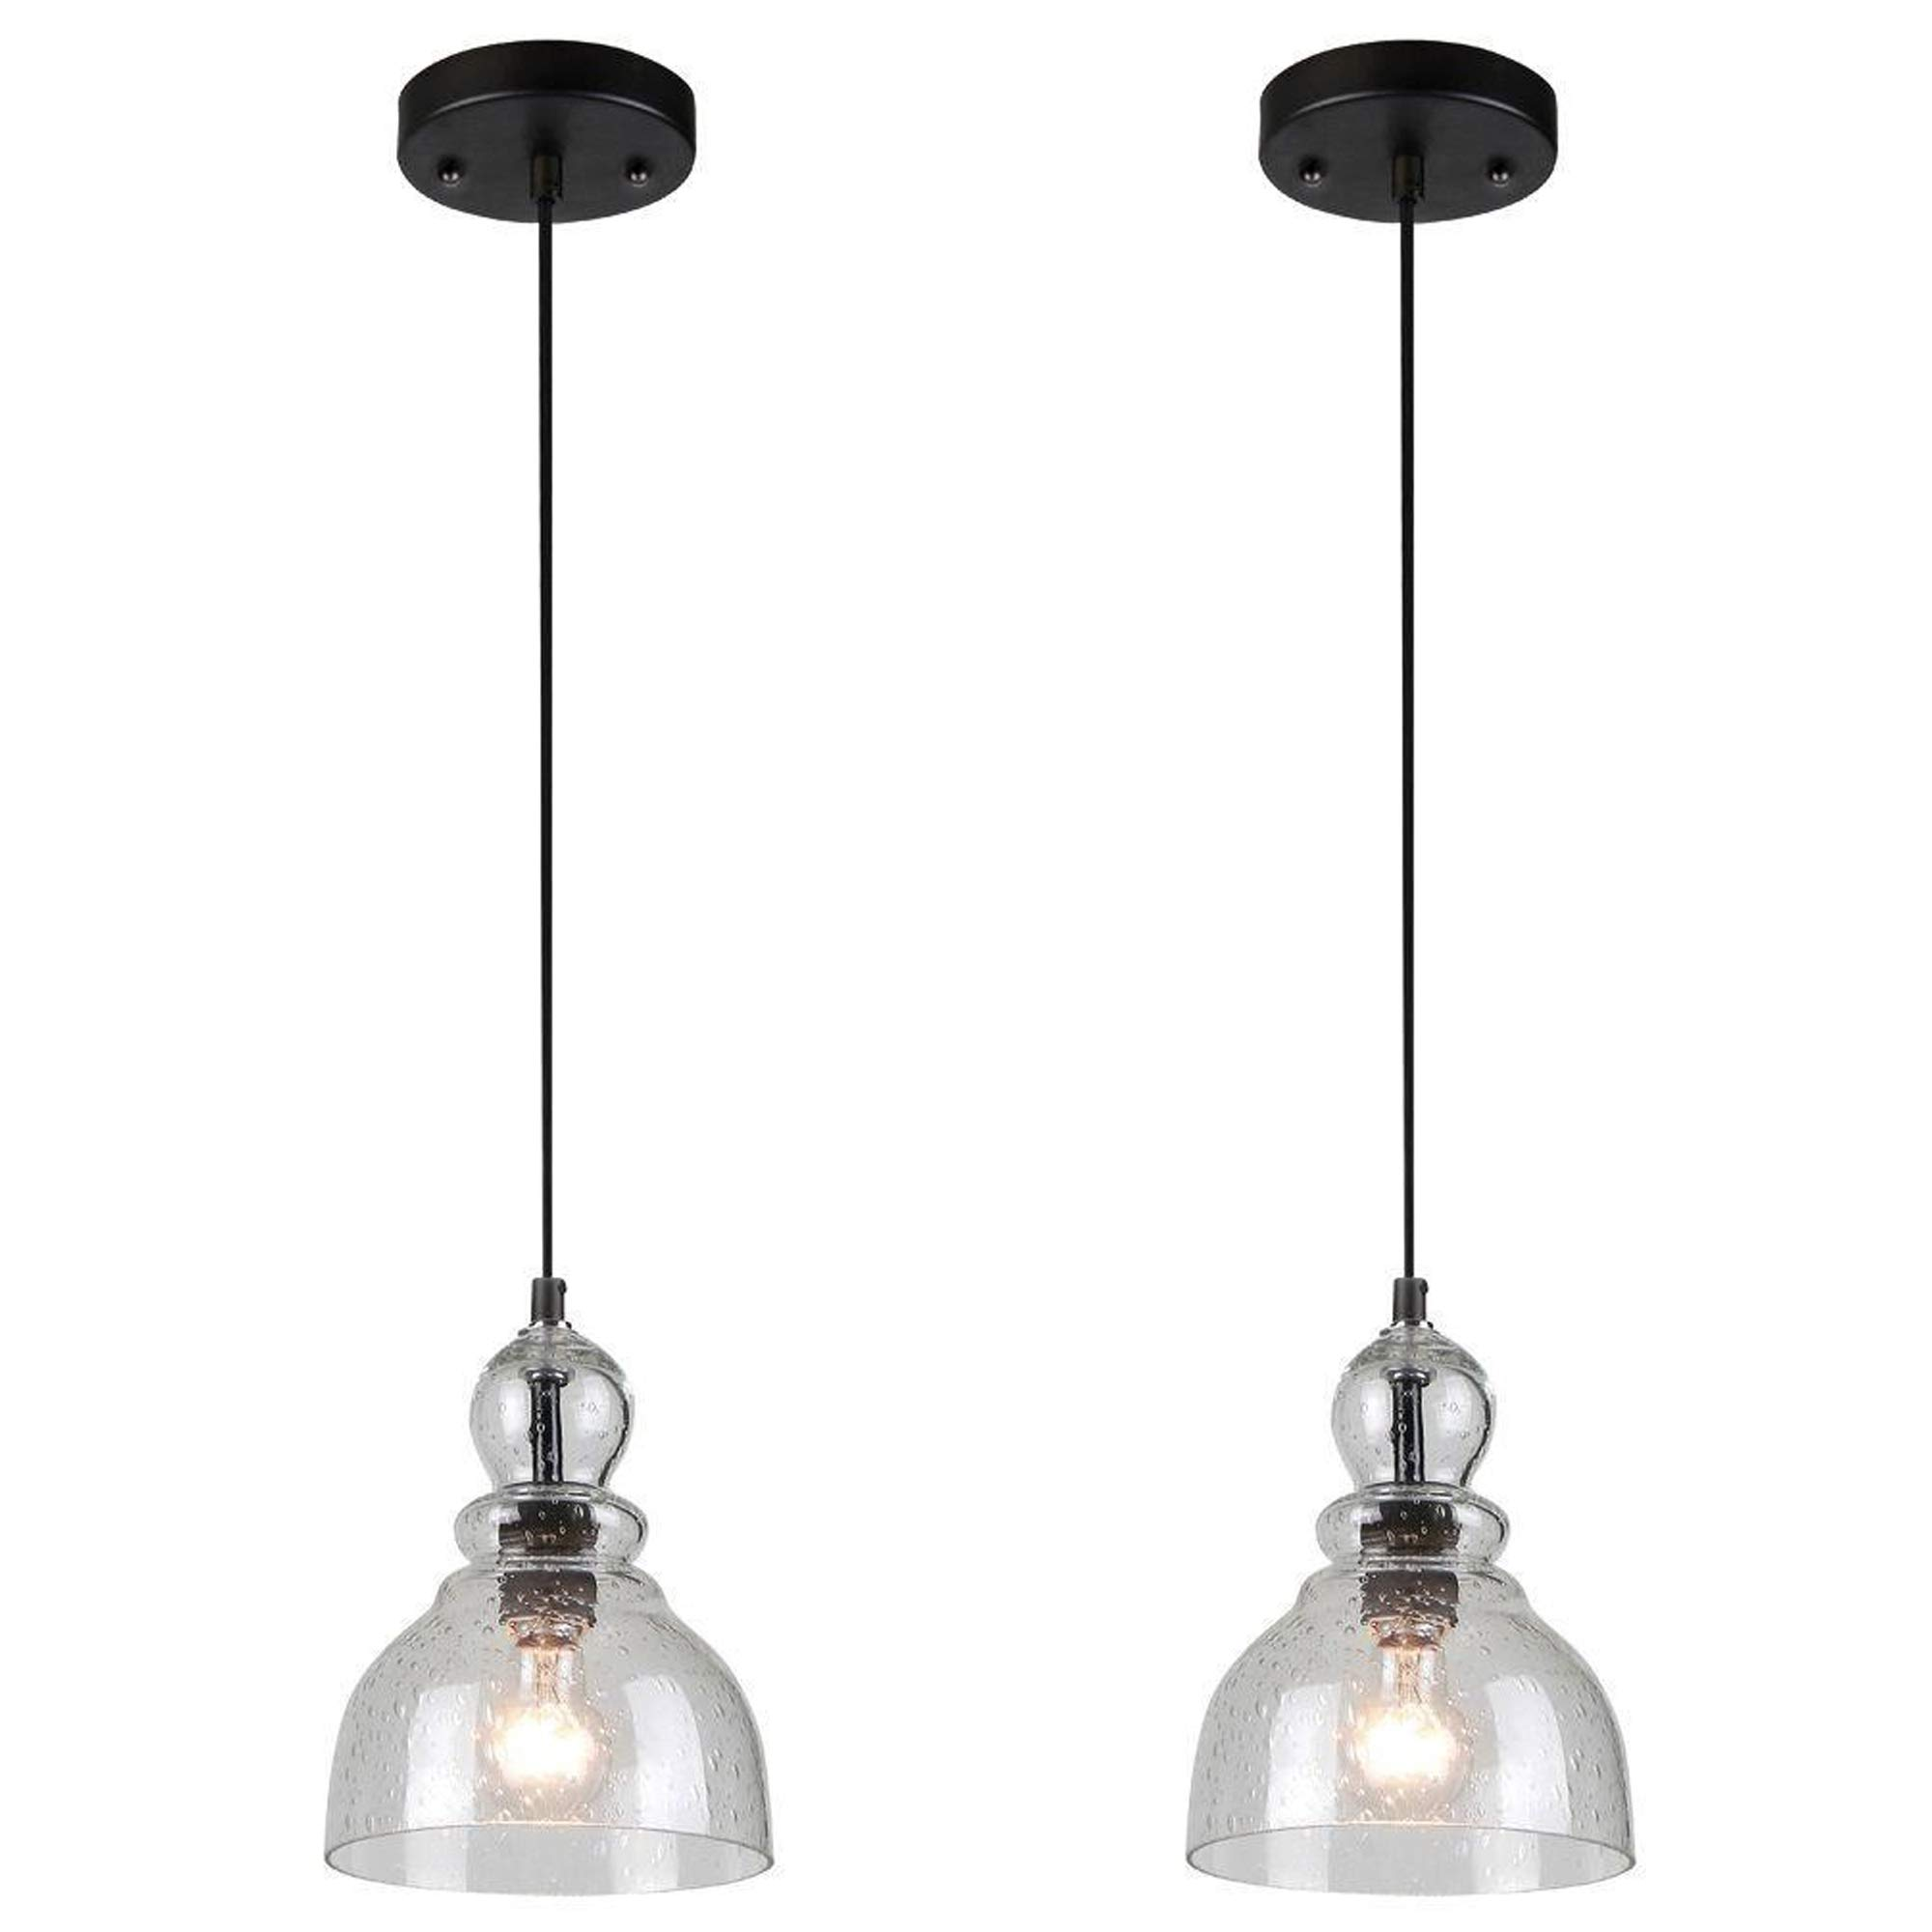 1 light mini pendant rubbed bronze with clear hand blown glass*